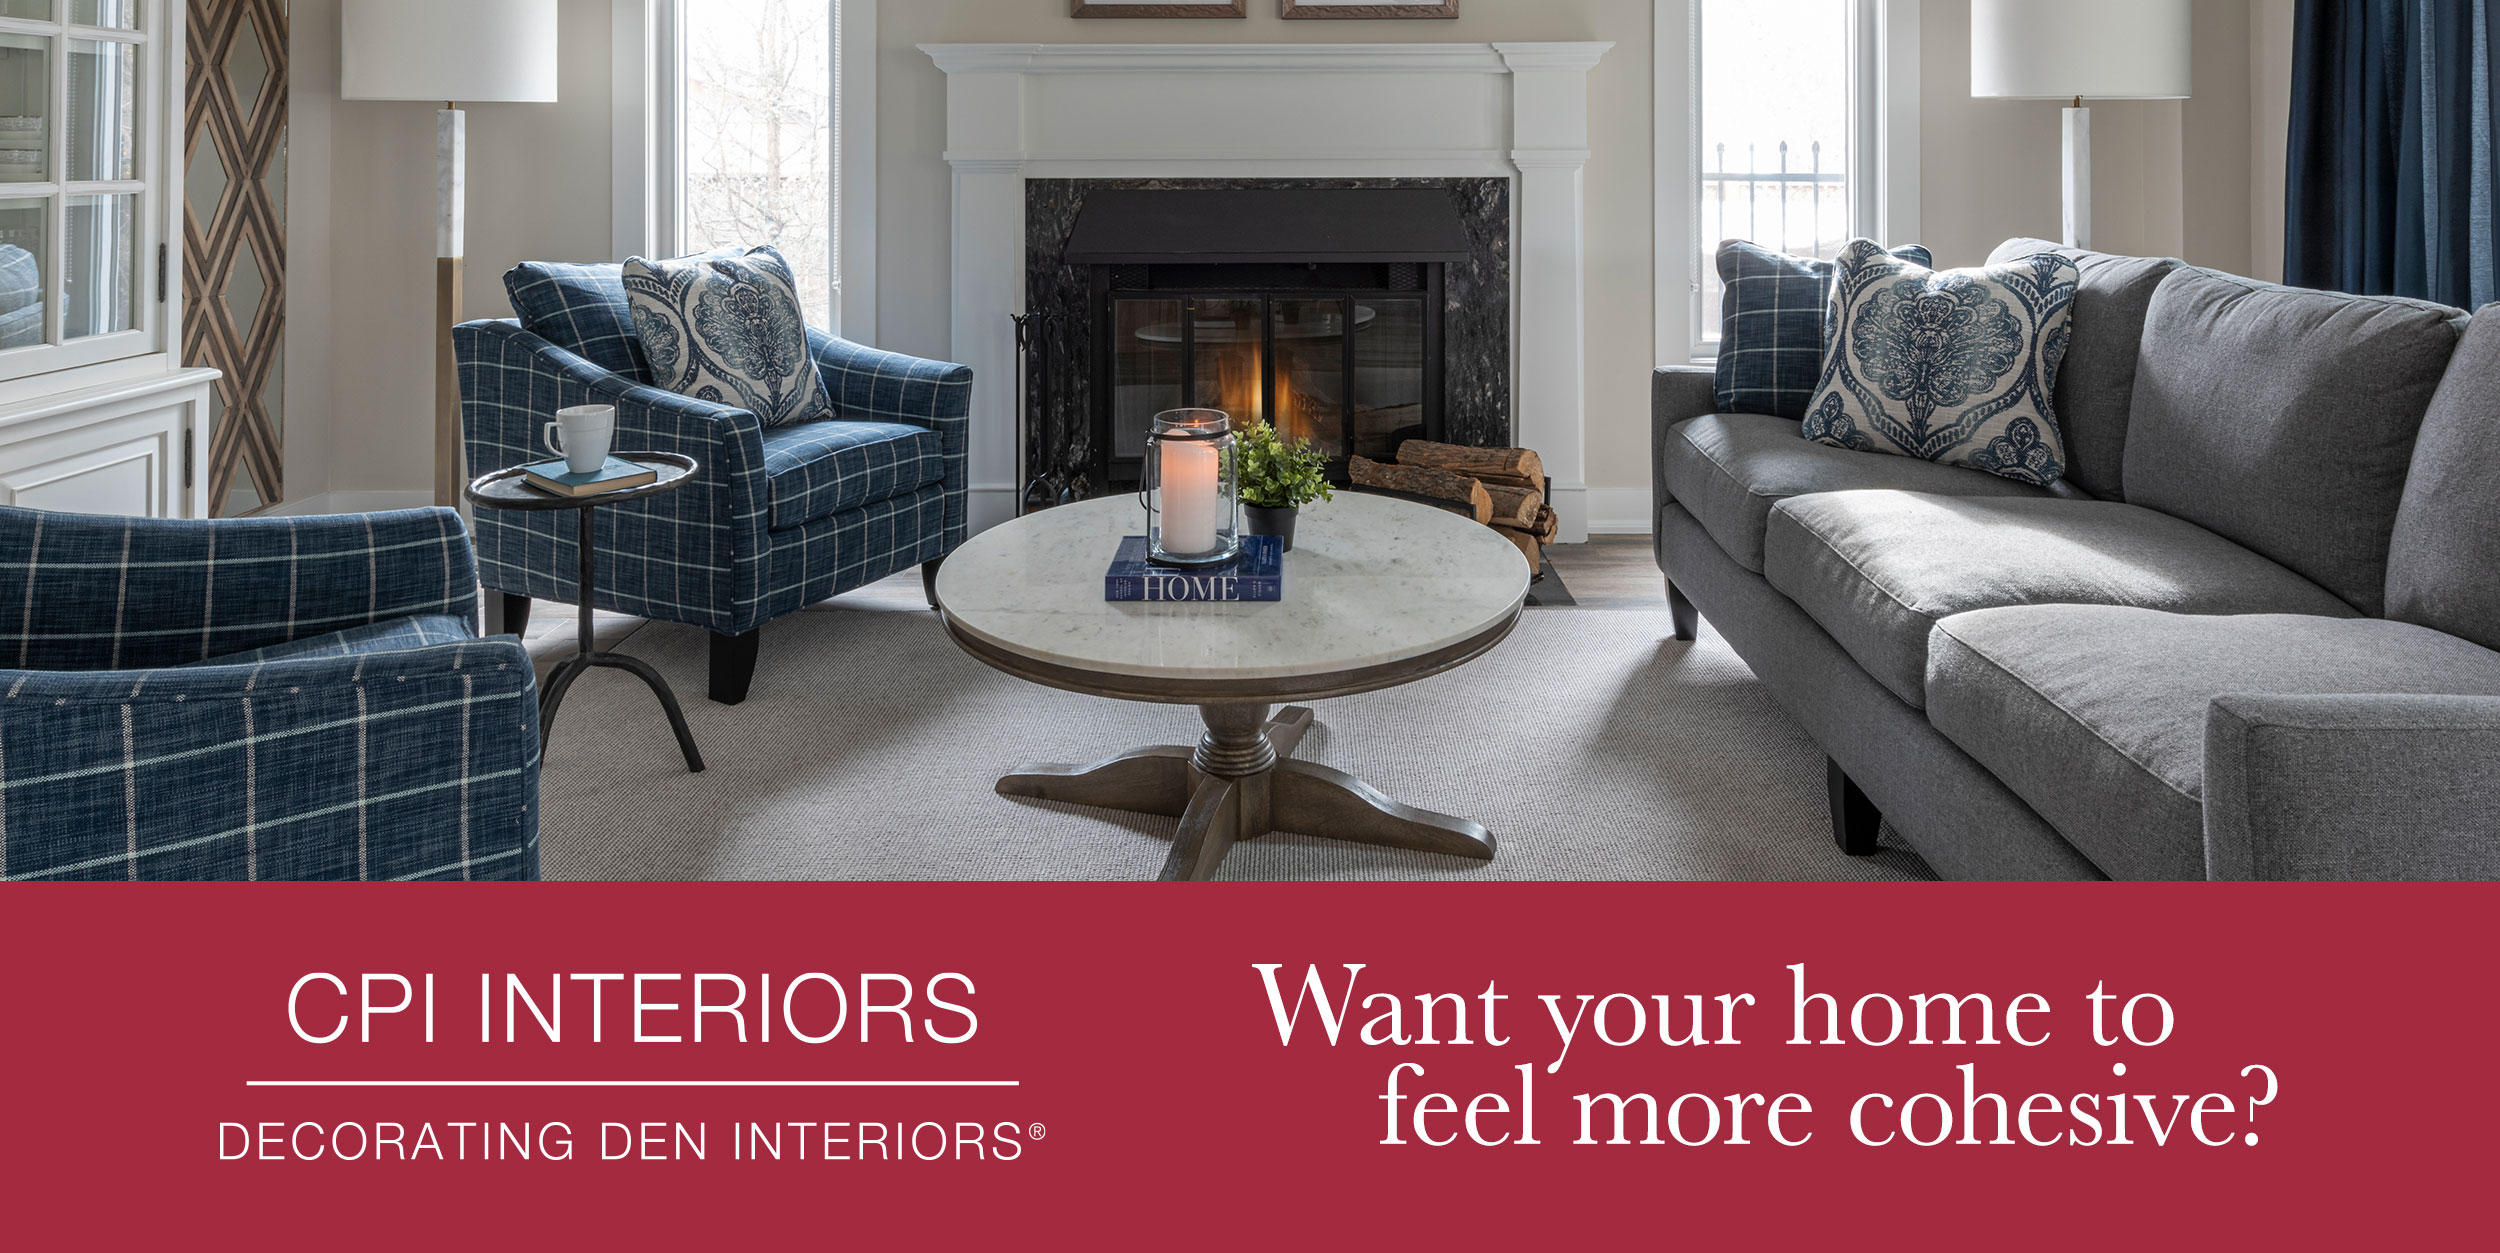 Does your home feel cohesive and flow from one room to the next?